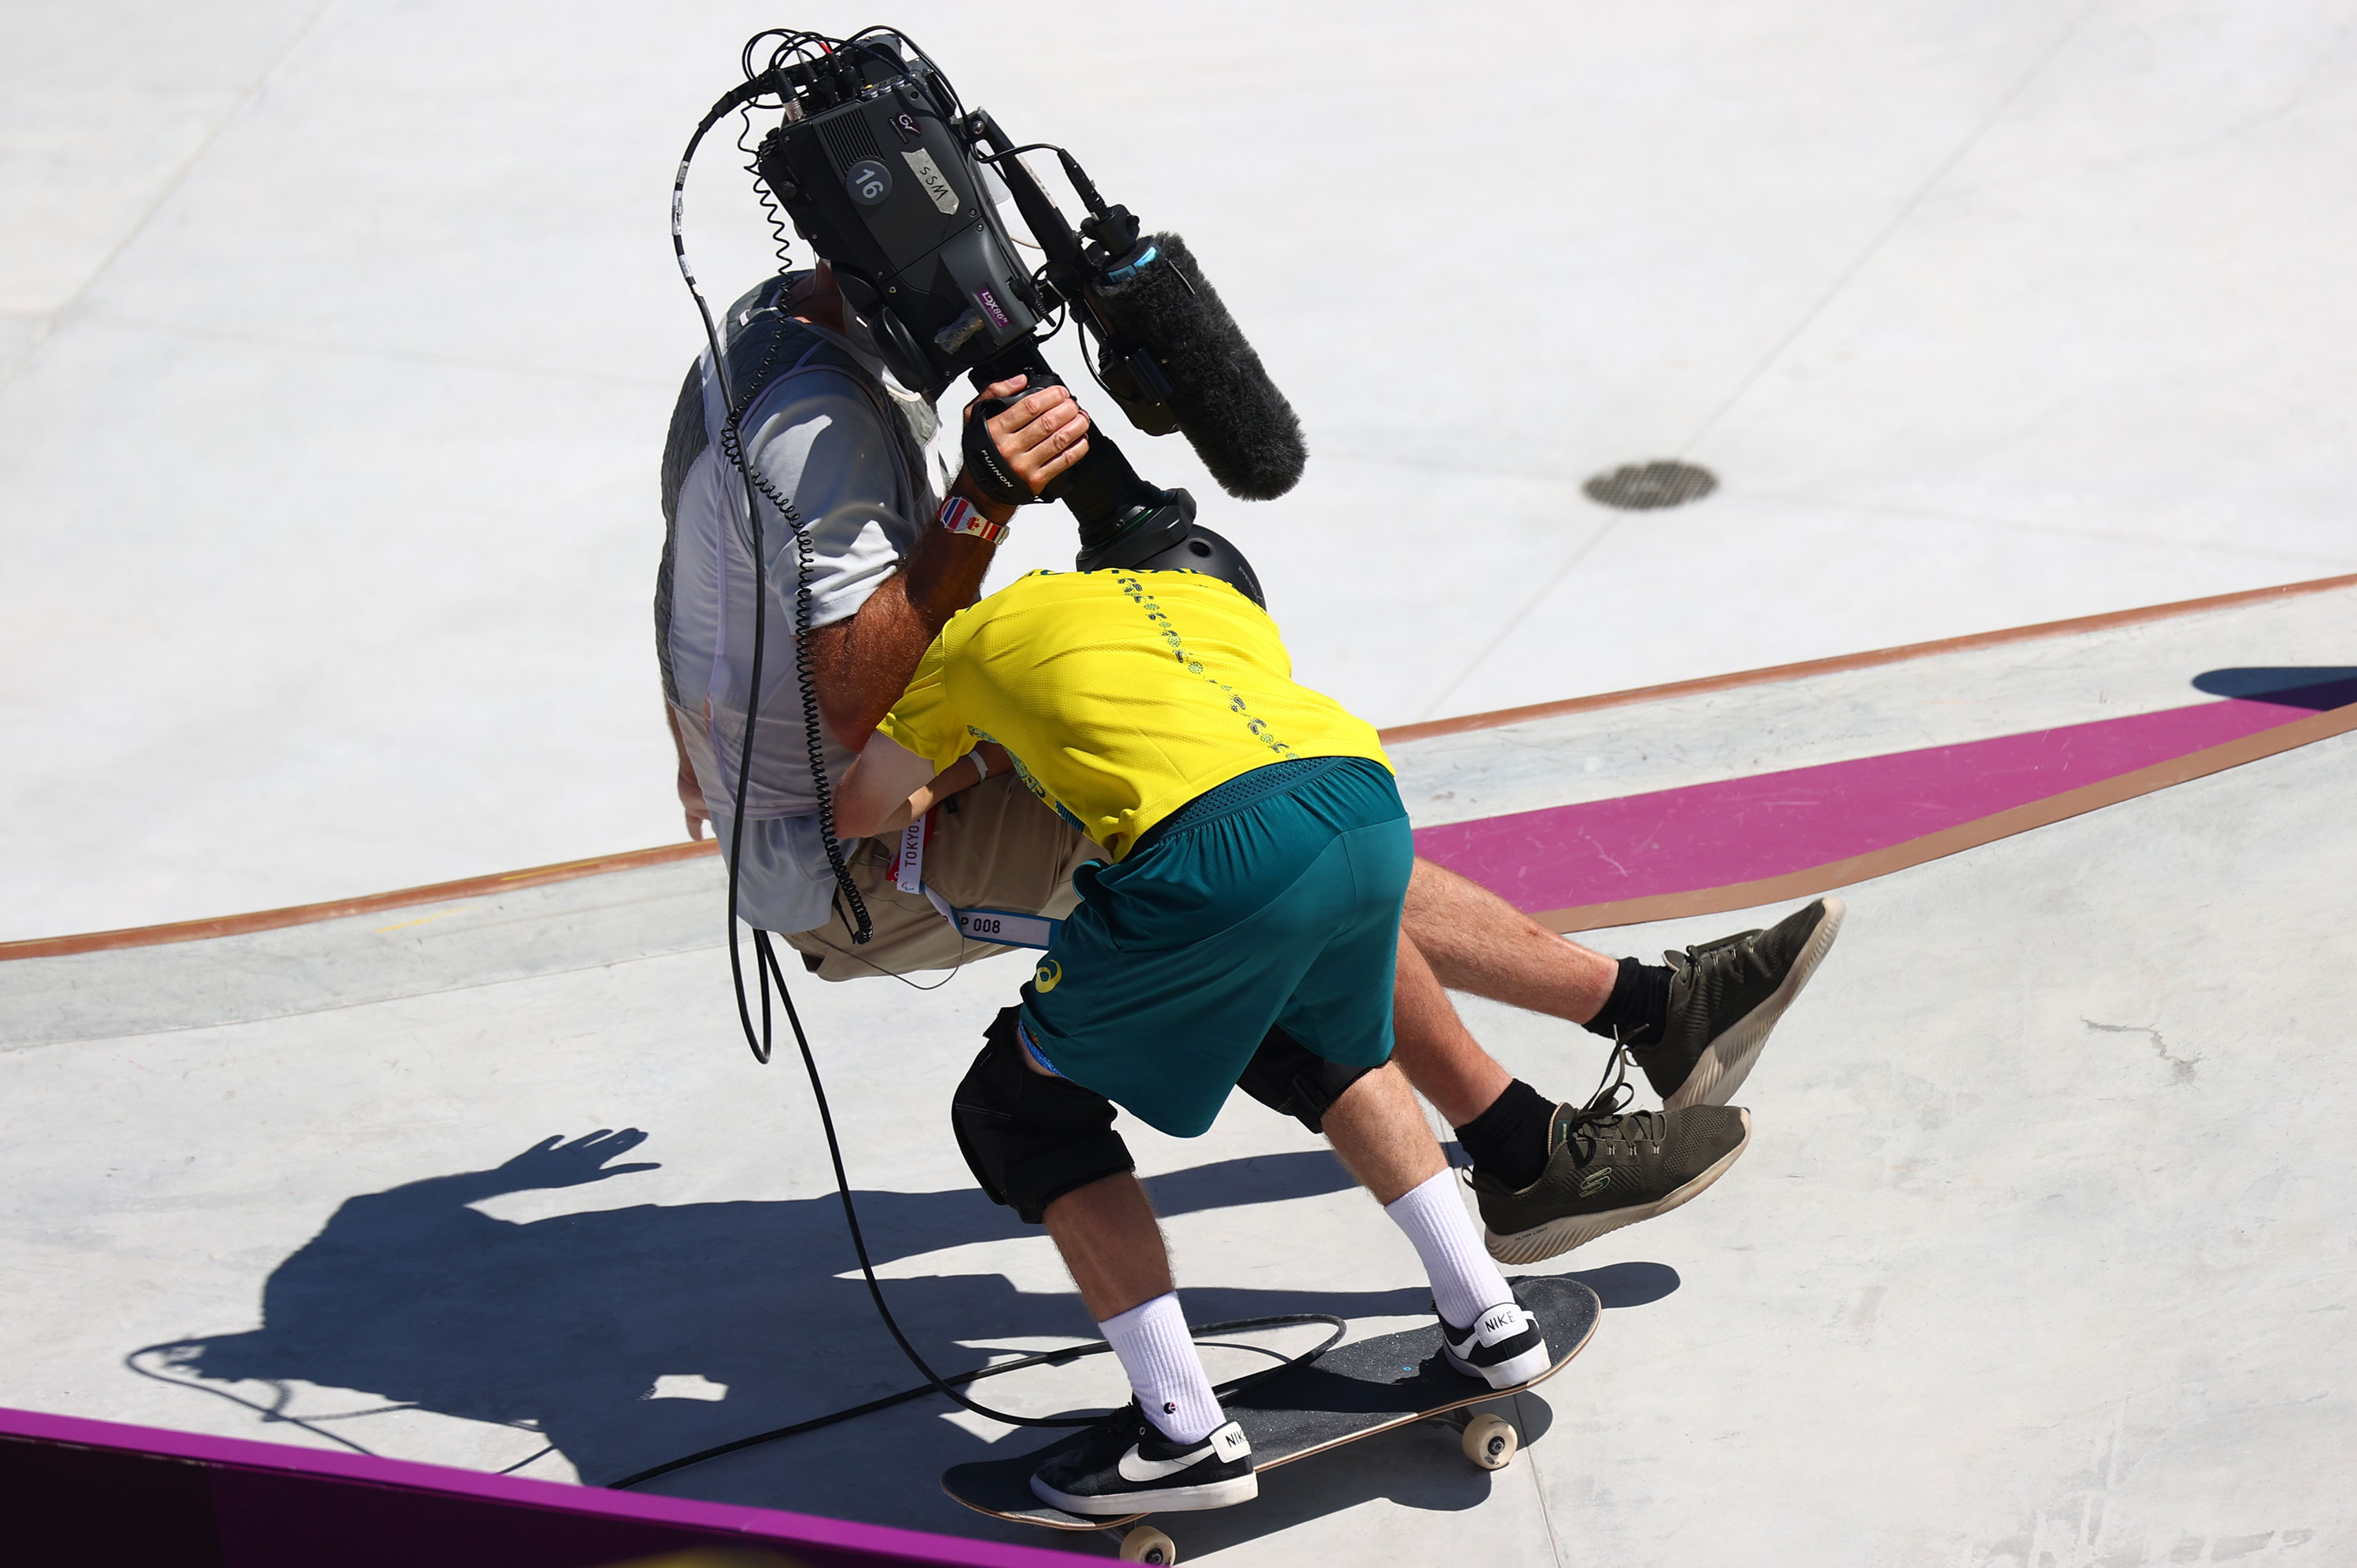 Kieran Woolley of Australia crashes into a cameraman during a park skateboarding preliminary round on August 5.